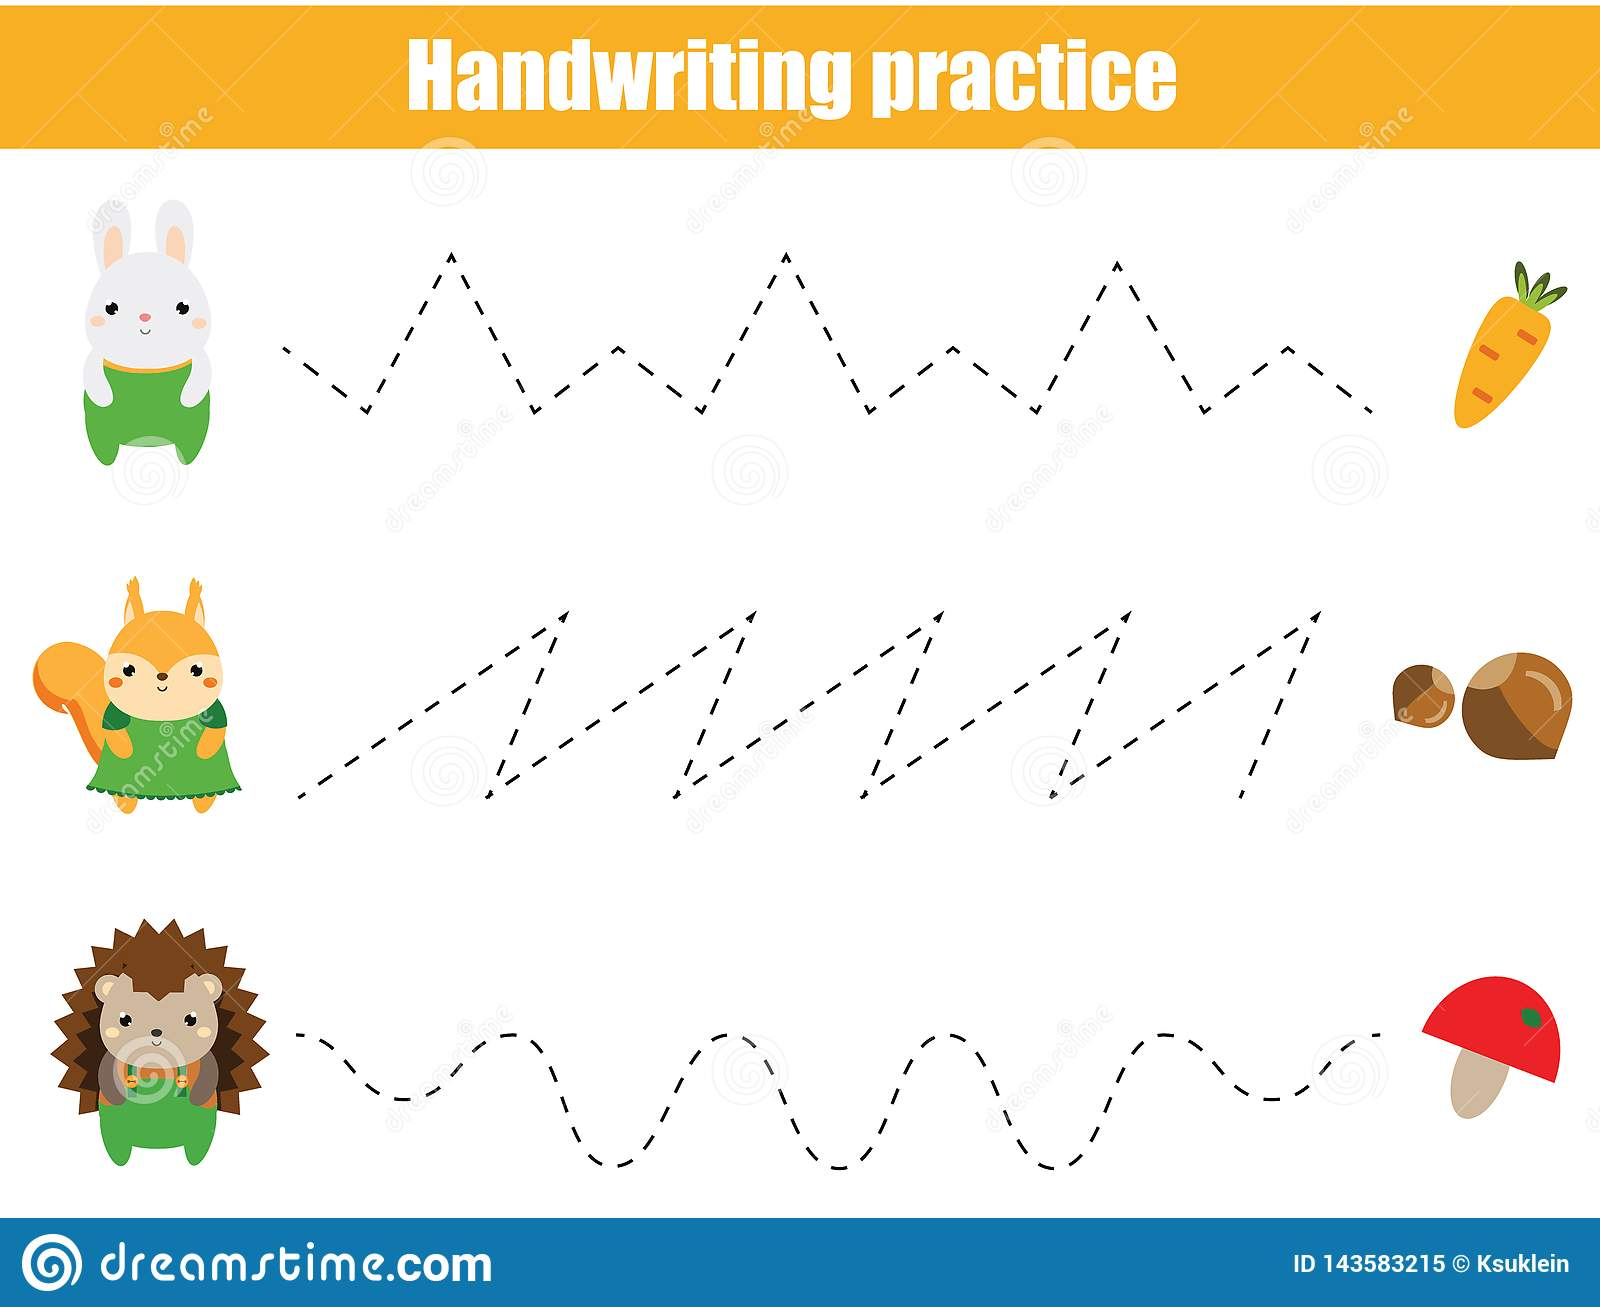 - Preschool Handwriting Practice Sheet. Educational Children Game